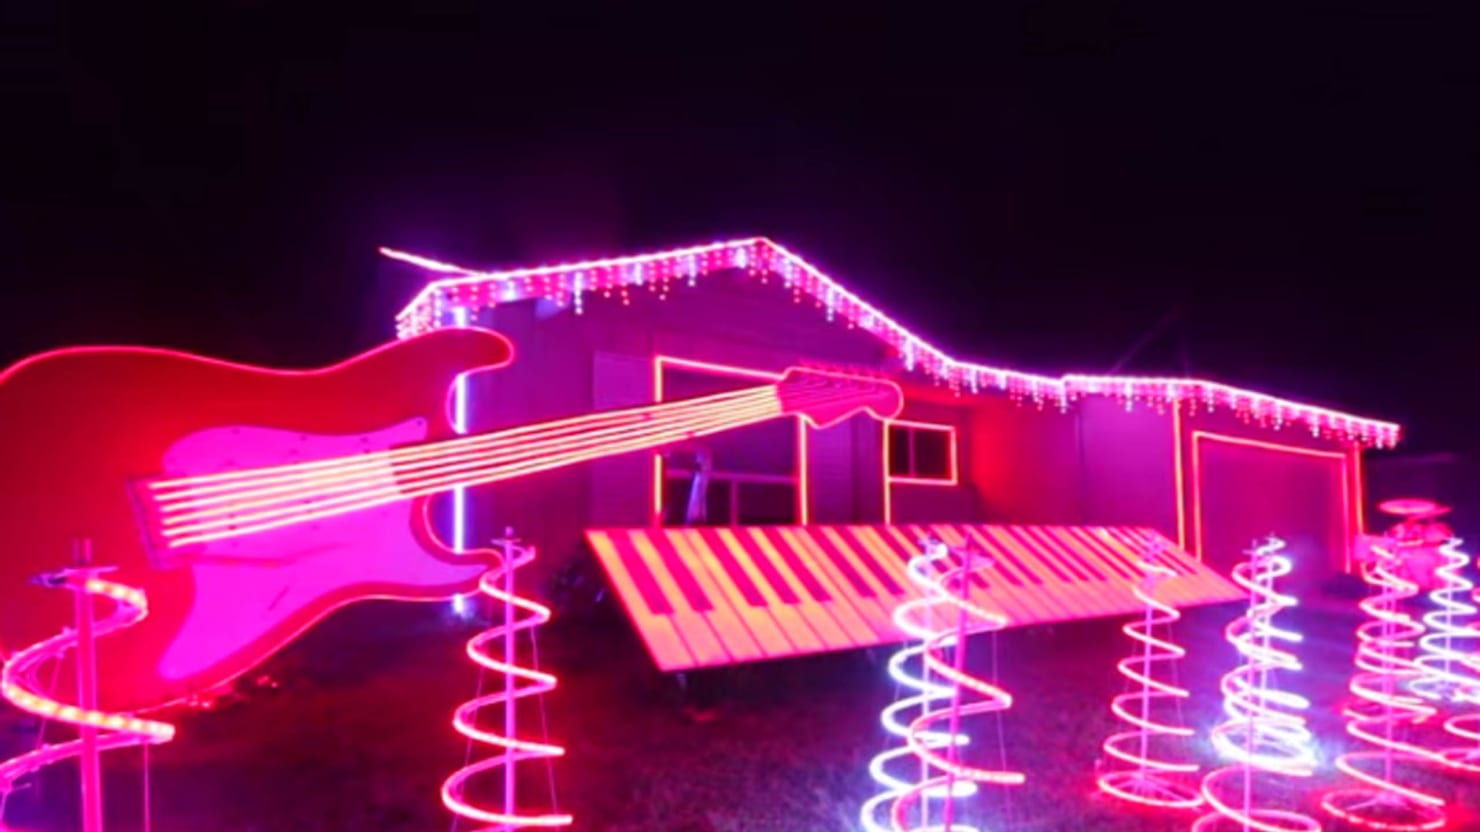 Star Wars Christmas Lights, Unedited Footage of a Bear, and More Viral Videos